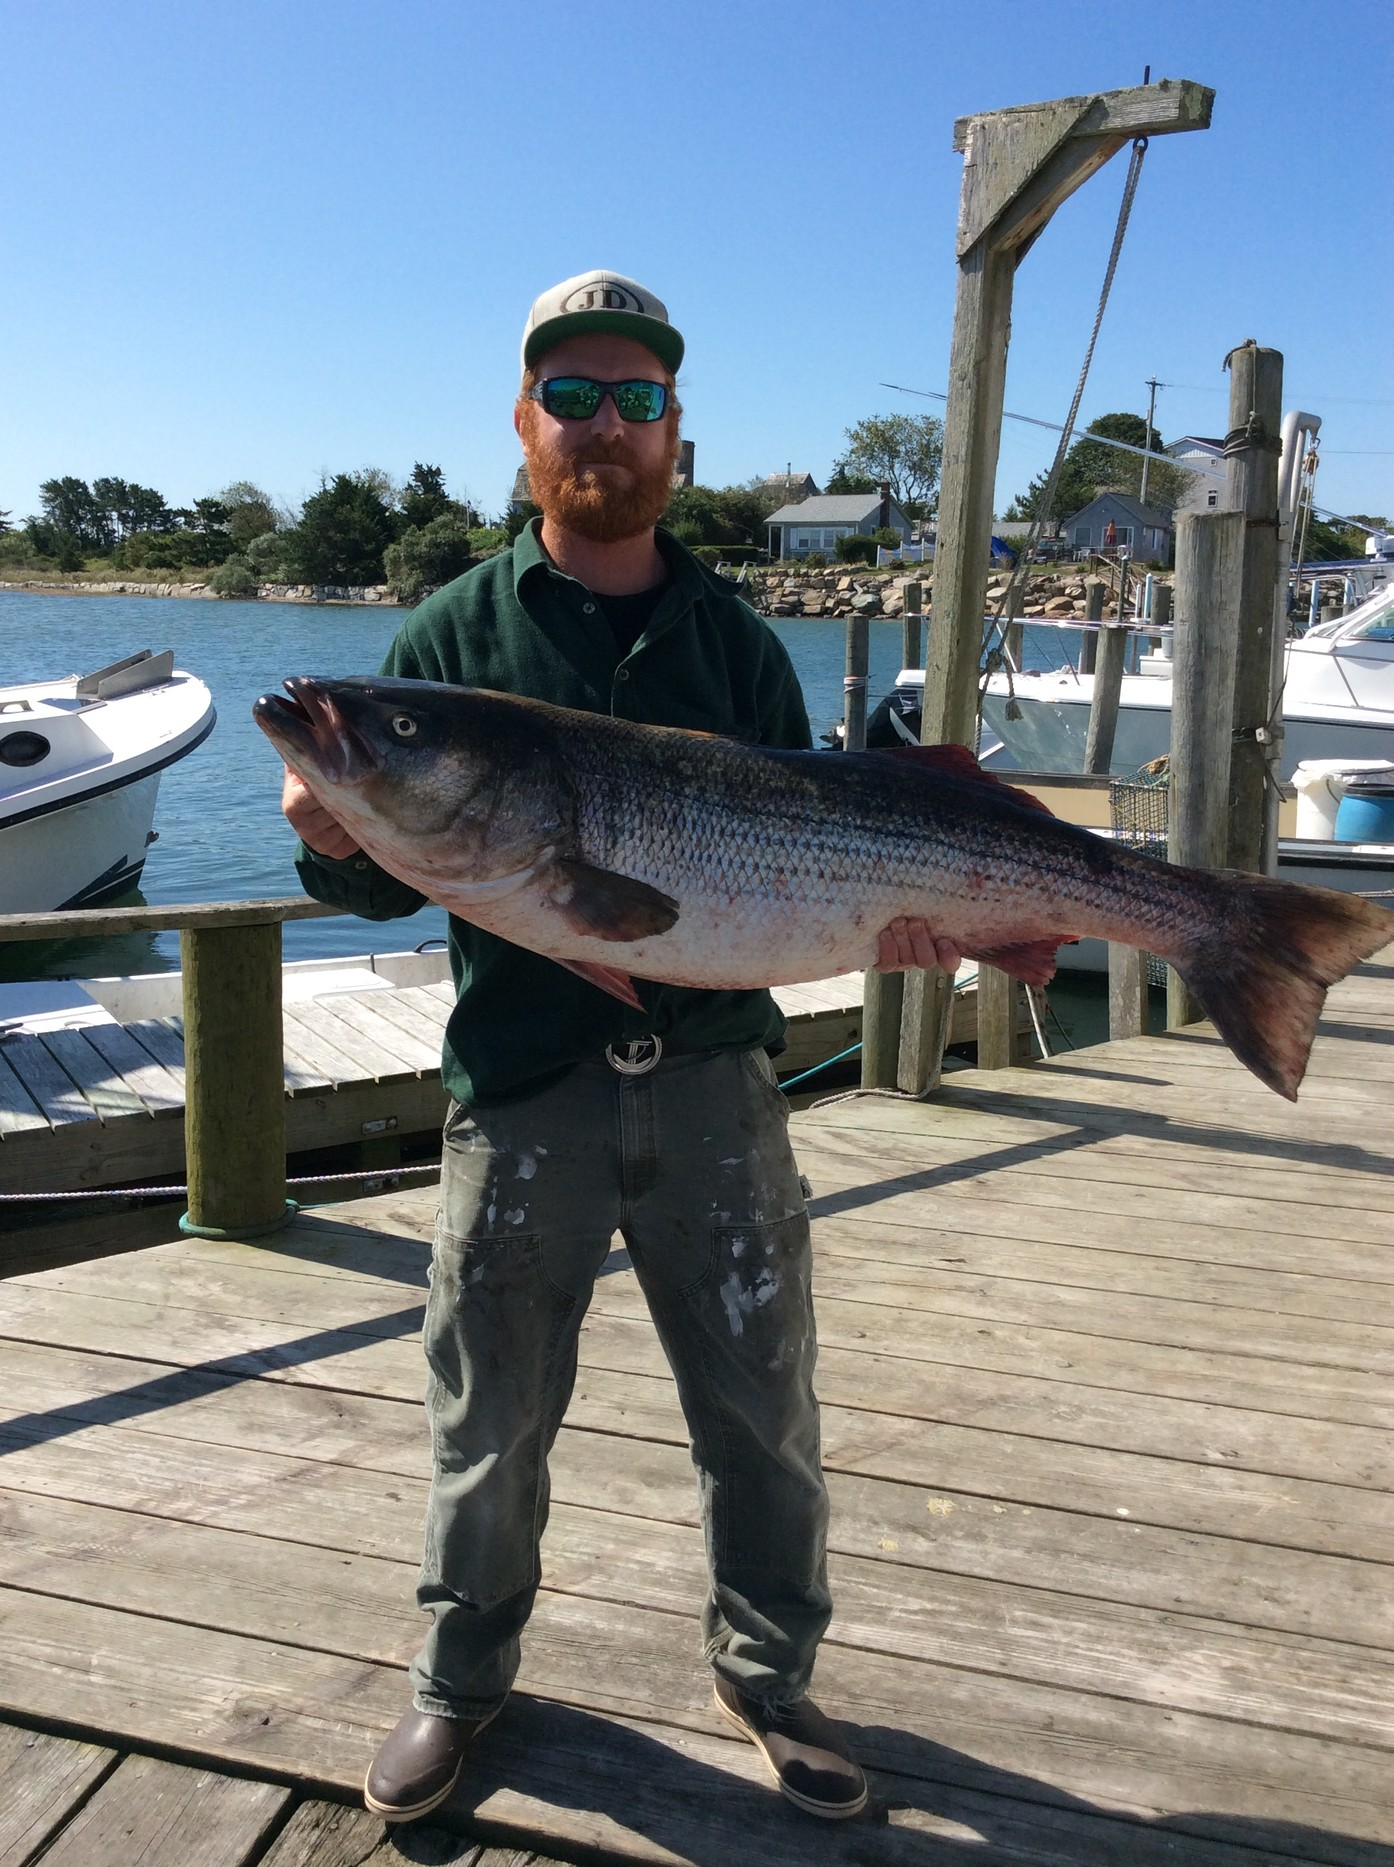 Kyle Dawson of Wakefield took first place in the 2nd Annual Snug Harbor Billy Carr Midnight Madness Striper Tournament last week with this 49.88 pound striped bass.